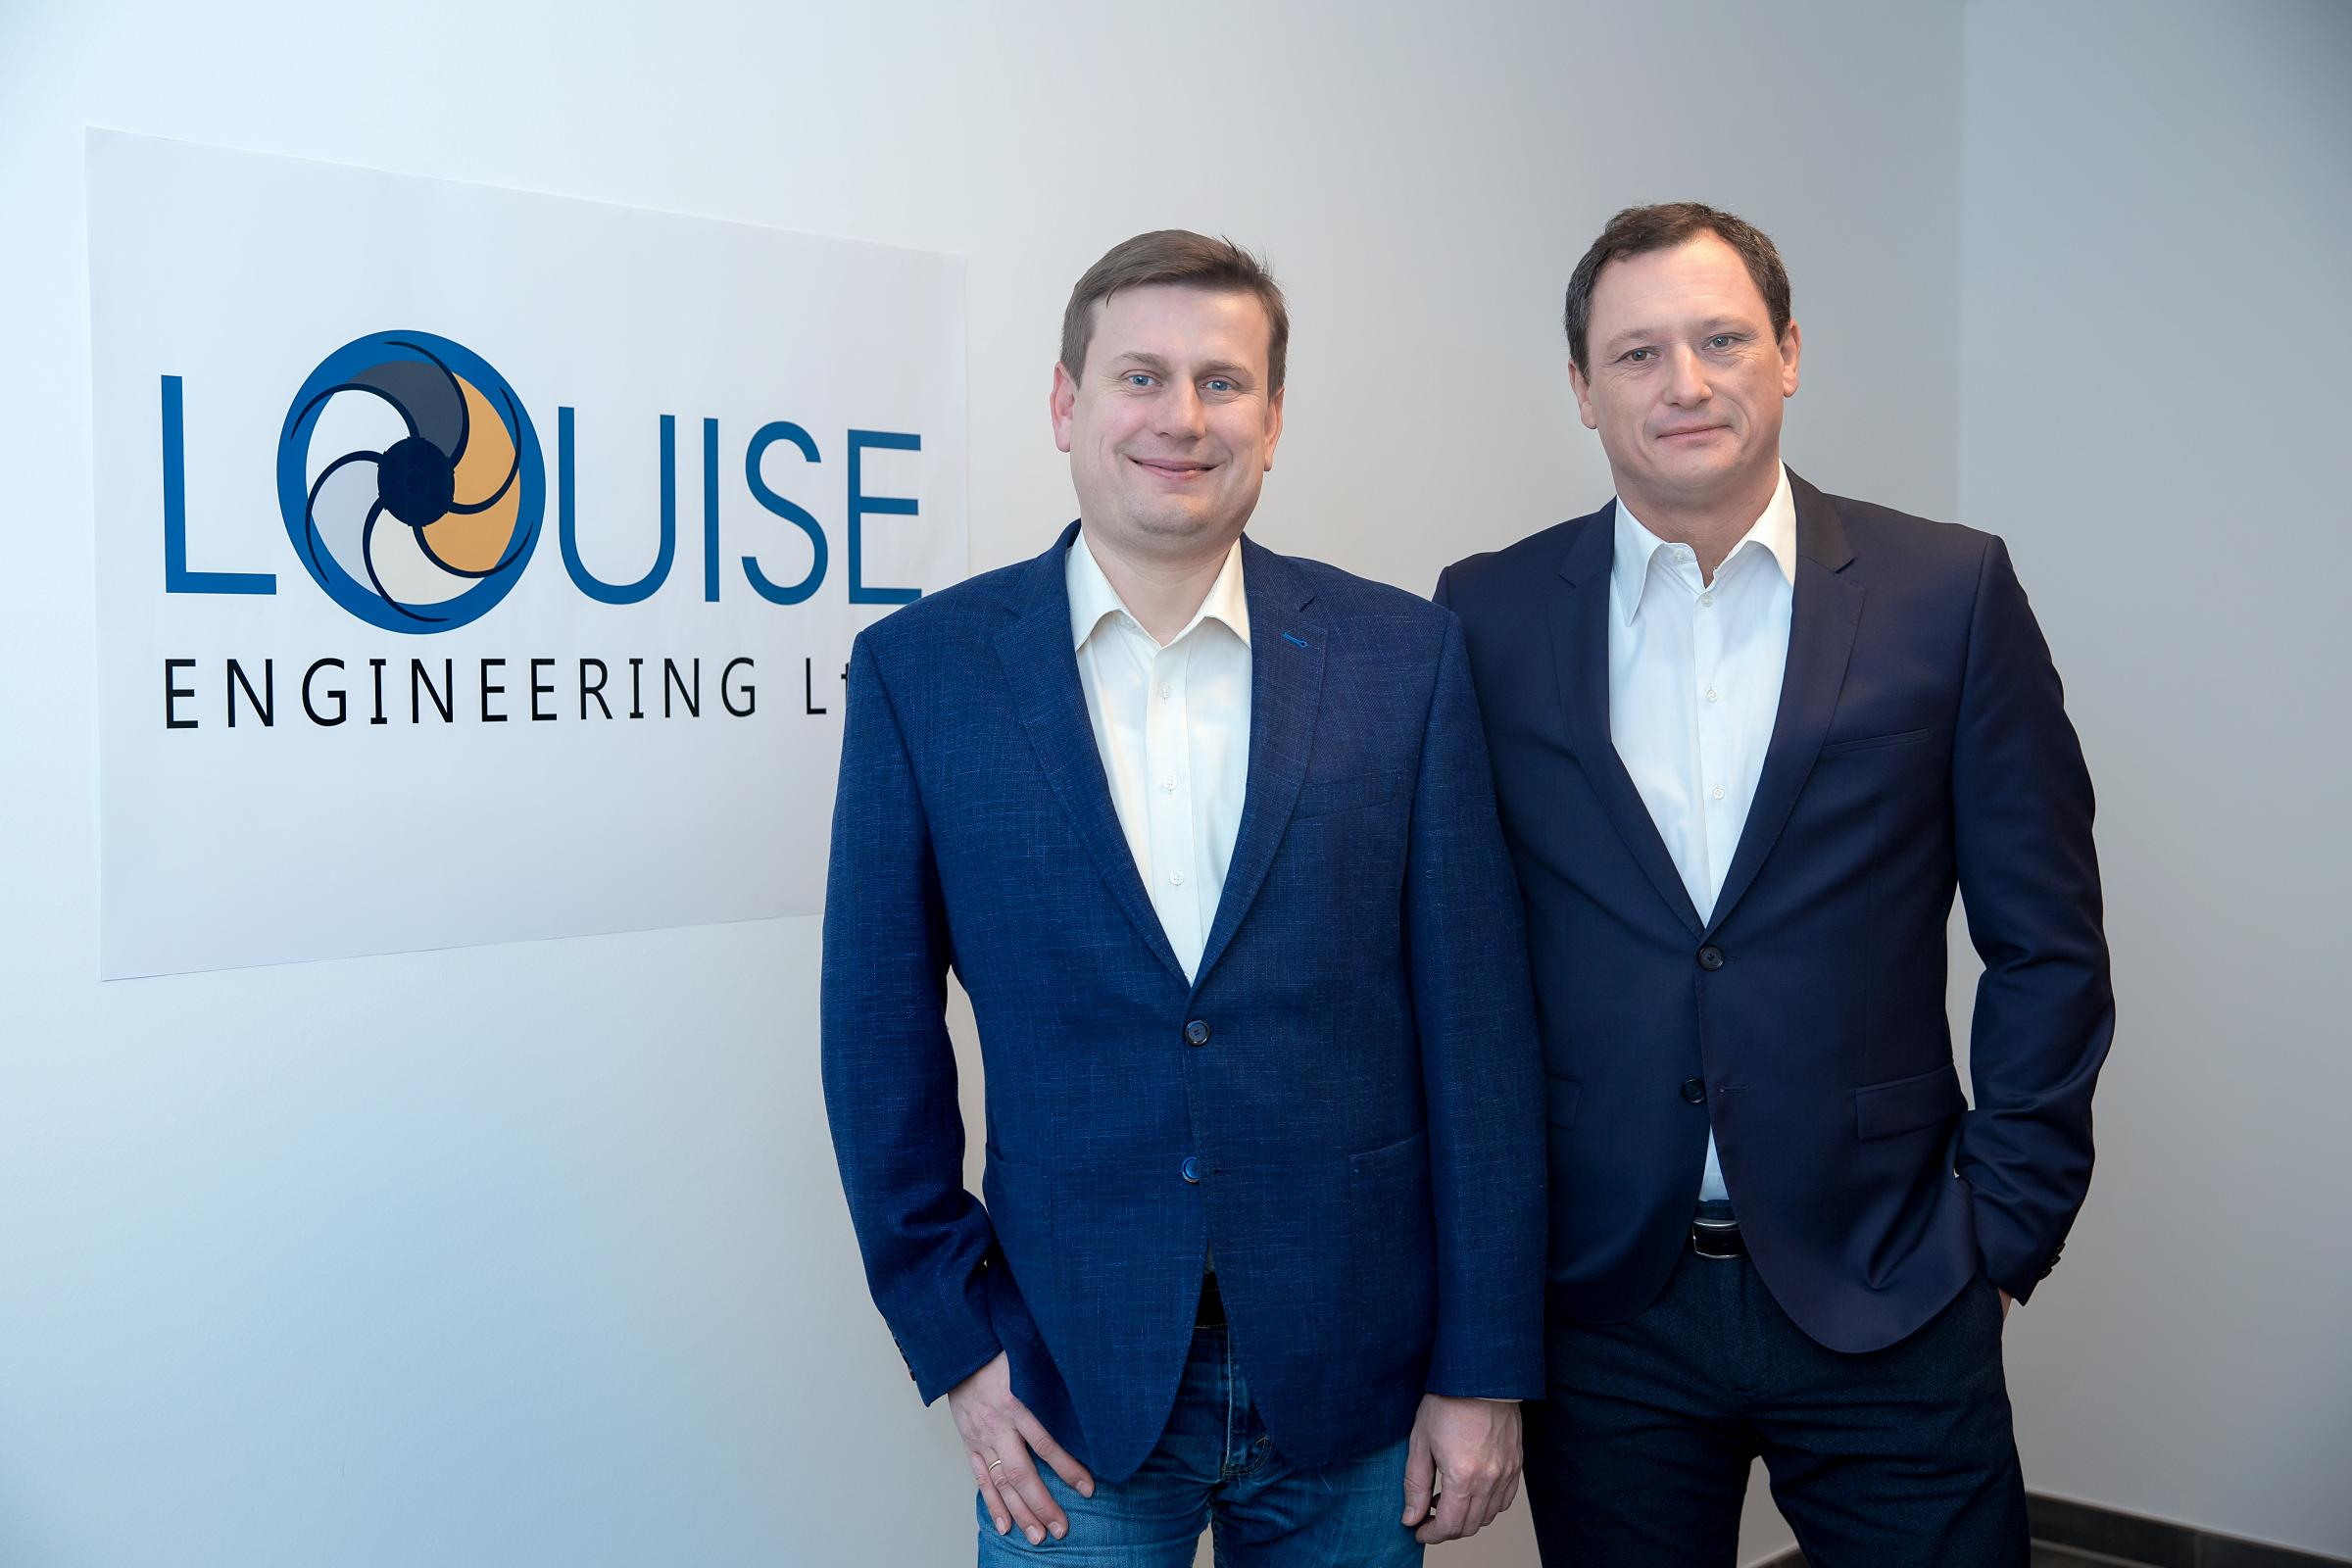 The new owners of Louise Engineering, Middlesbrough, received specialist help from overseas trade specialist, Chamber International with a major export to Russia